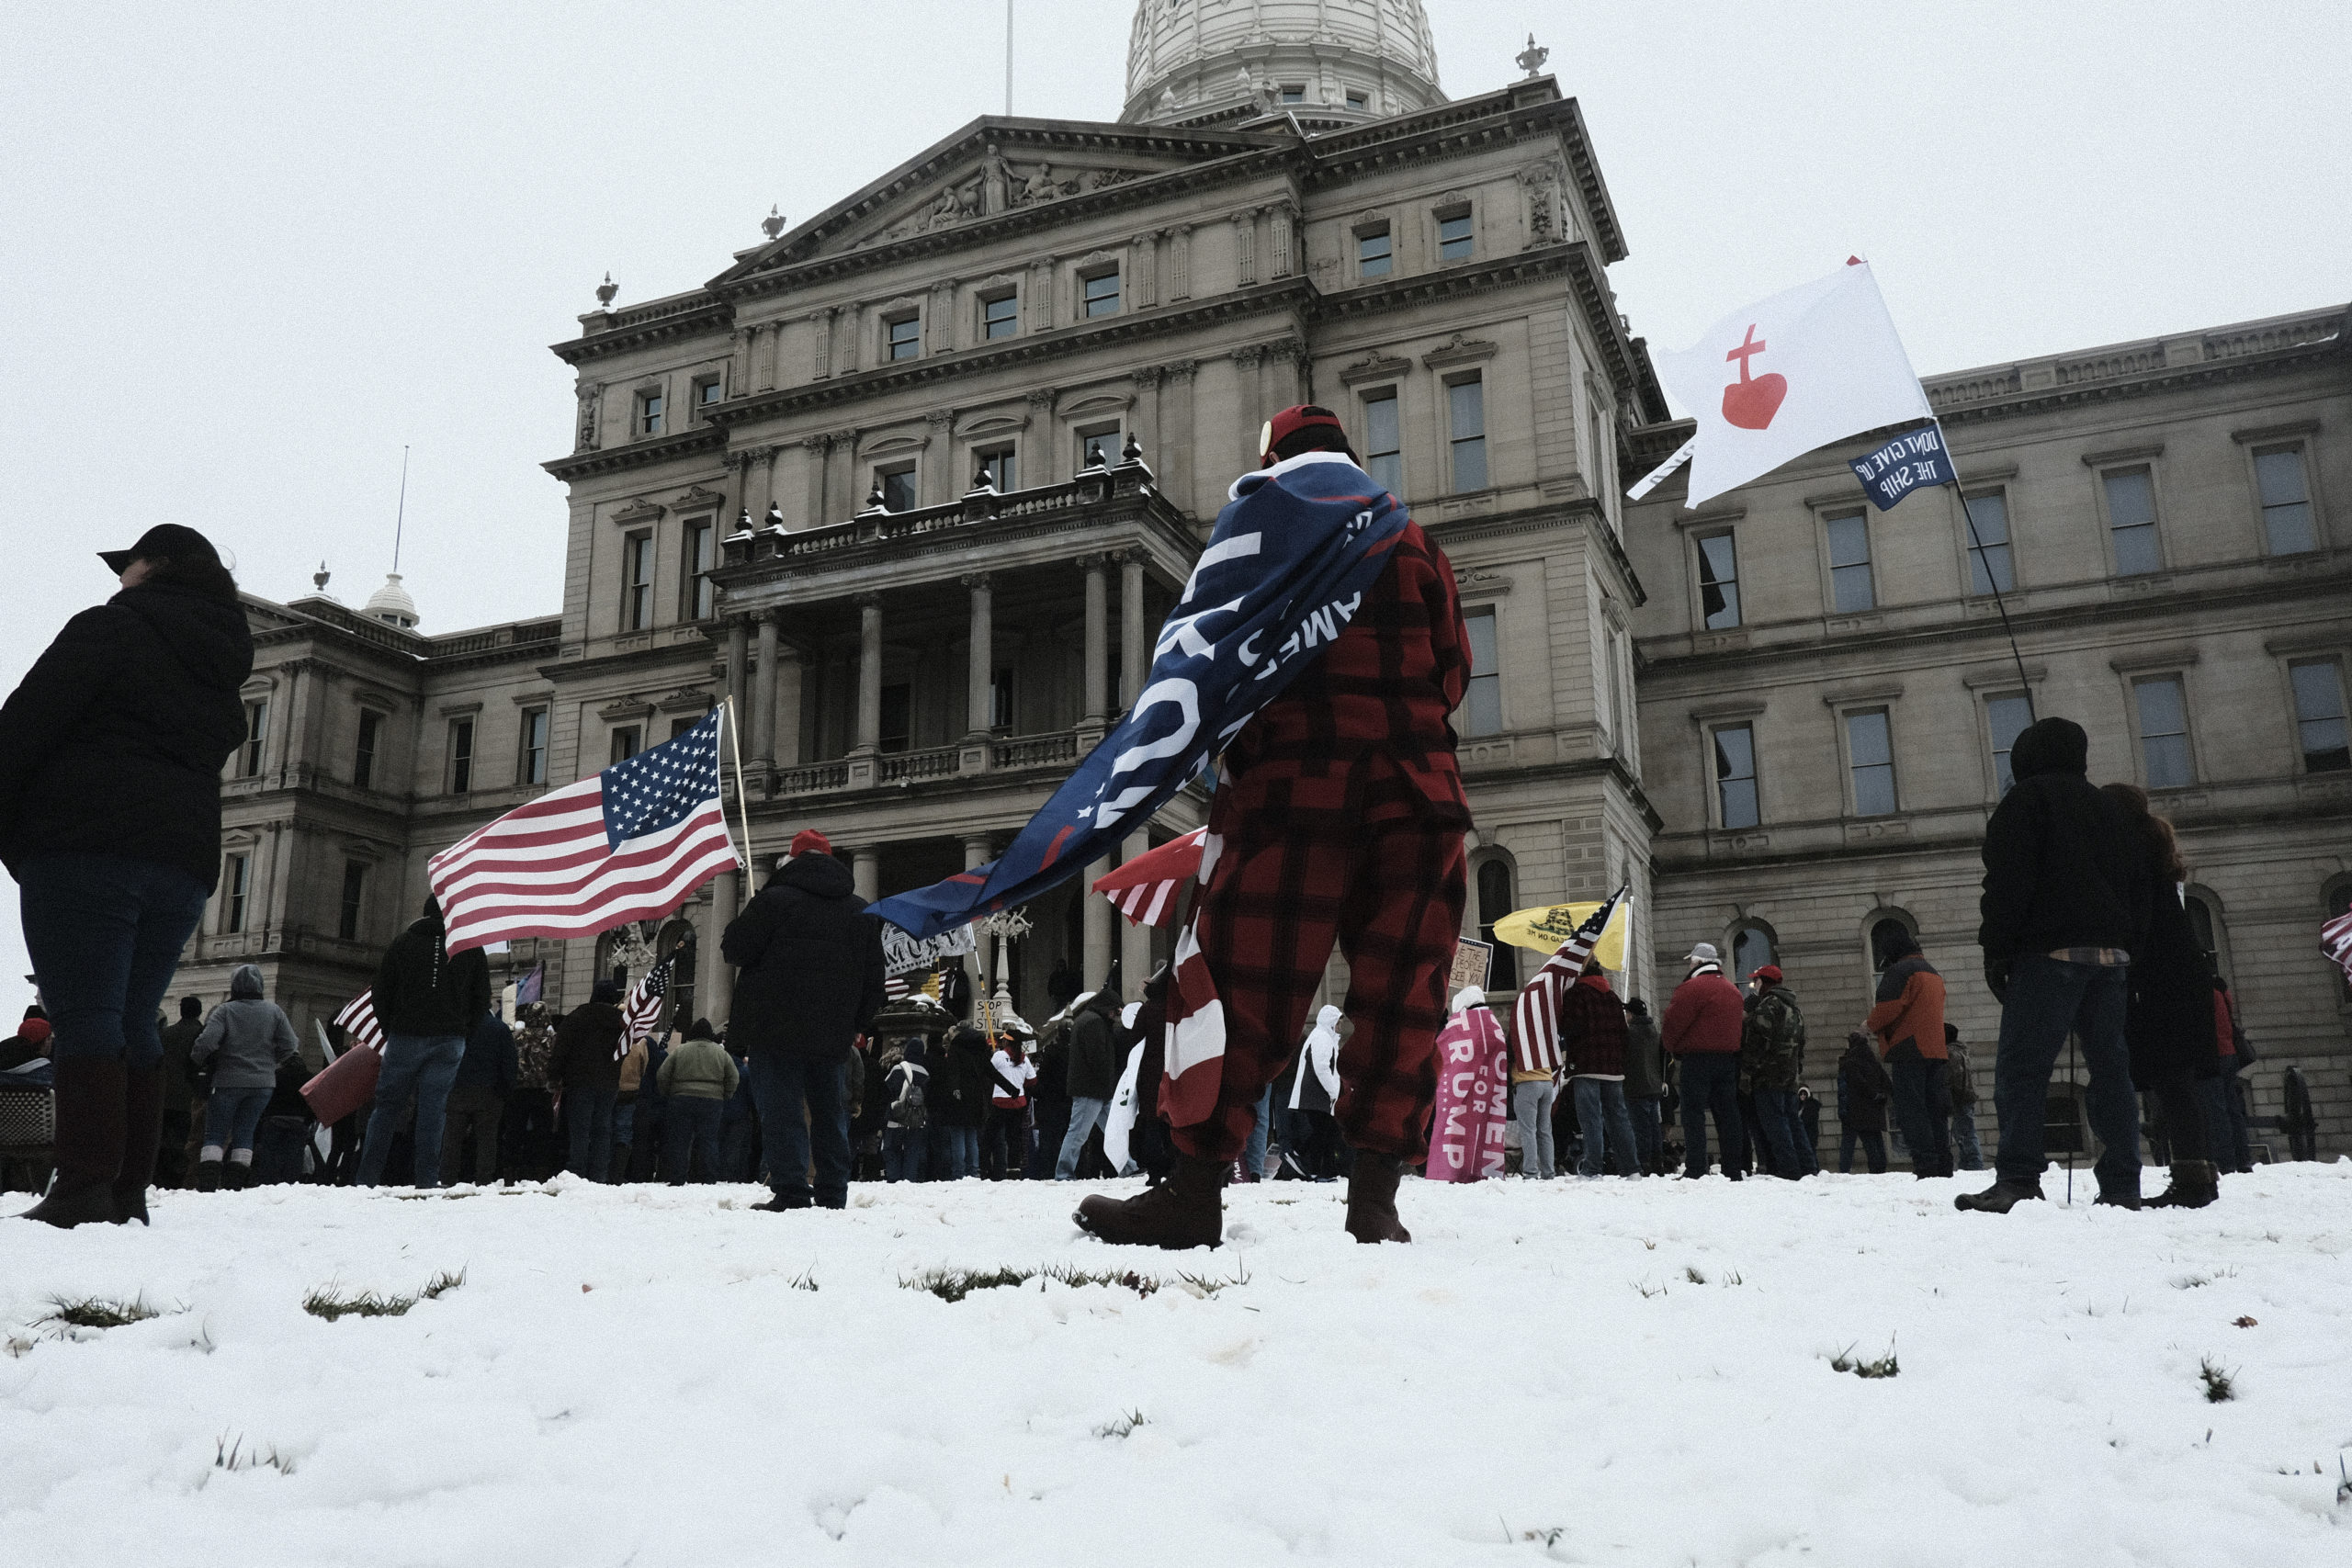 Trump supporters gather around the Michigan State Capitol Building to protest the certification of Joe Biden as the next president of the United States on January 6, 2021 in Lansing, Michigan. (Matthew Hatcher/Getty Images)